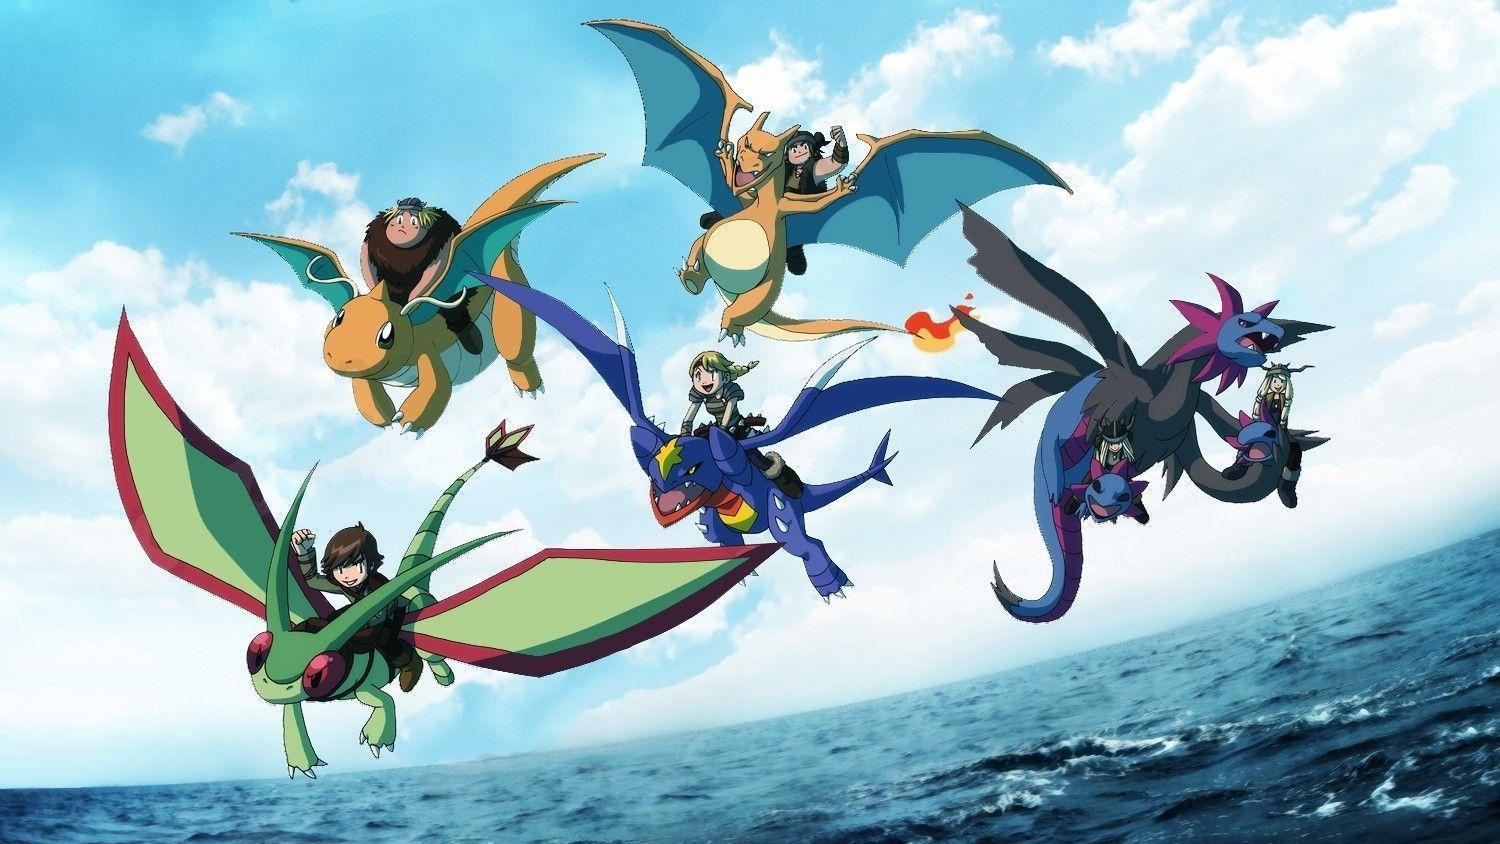 Pokemon how to train your dragon flygon charizard dragonite hiccup ...